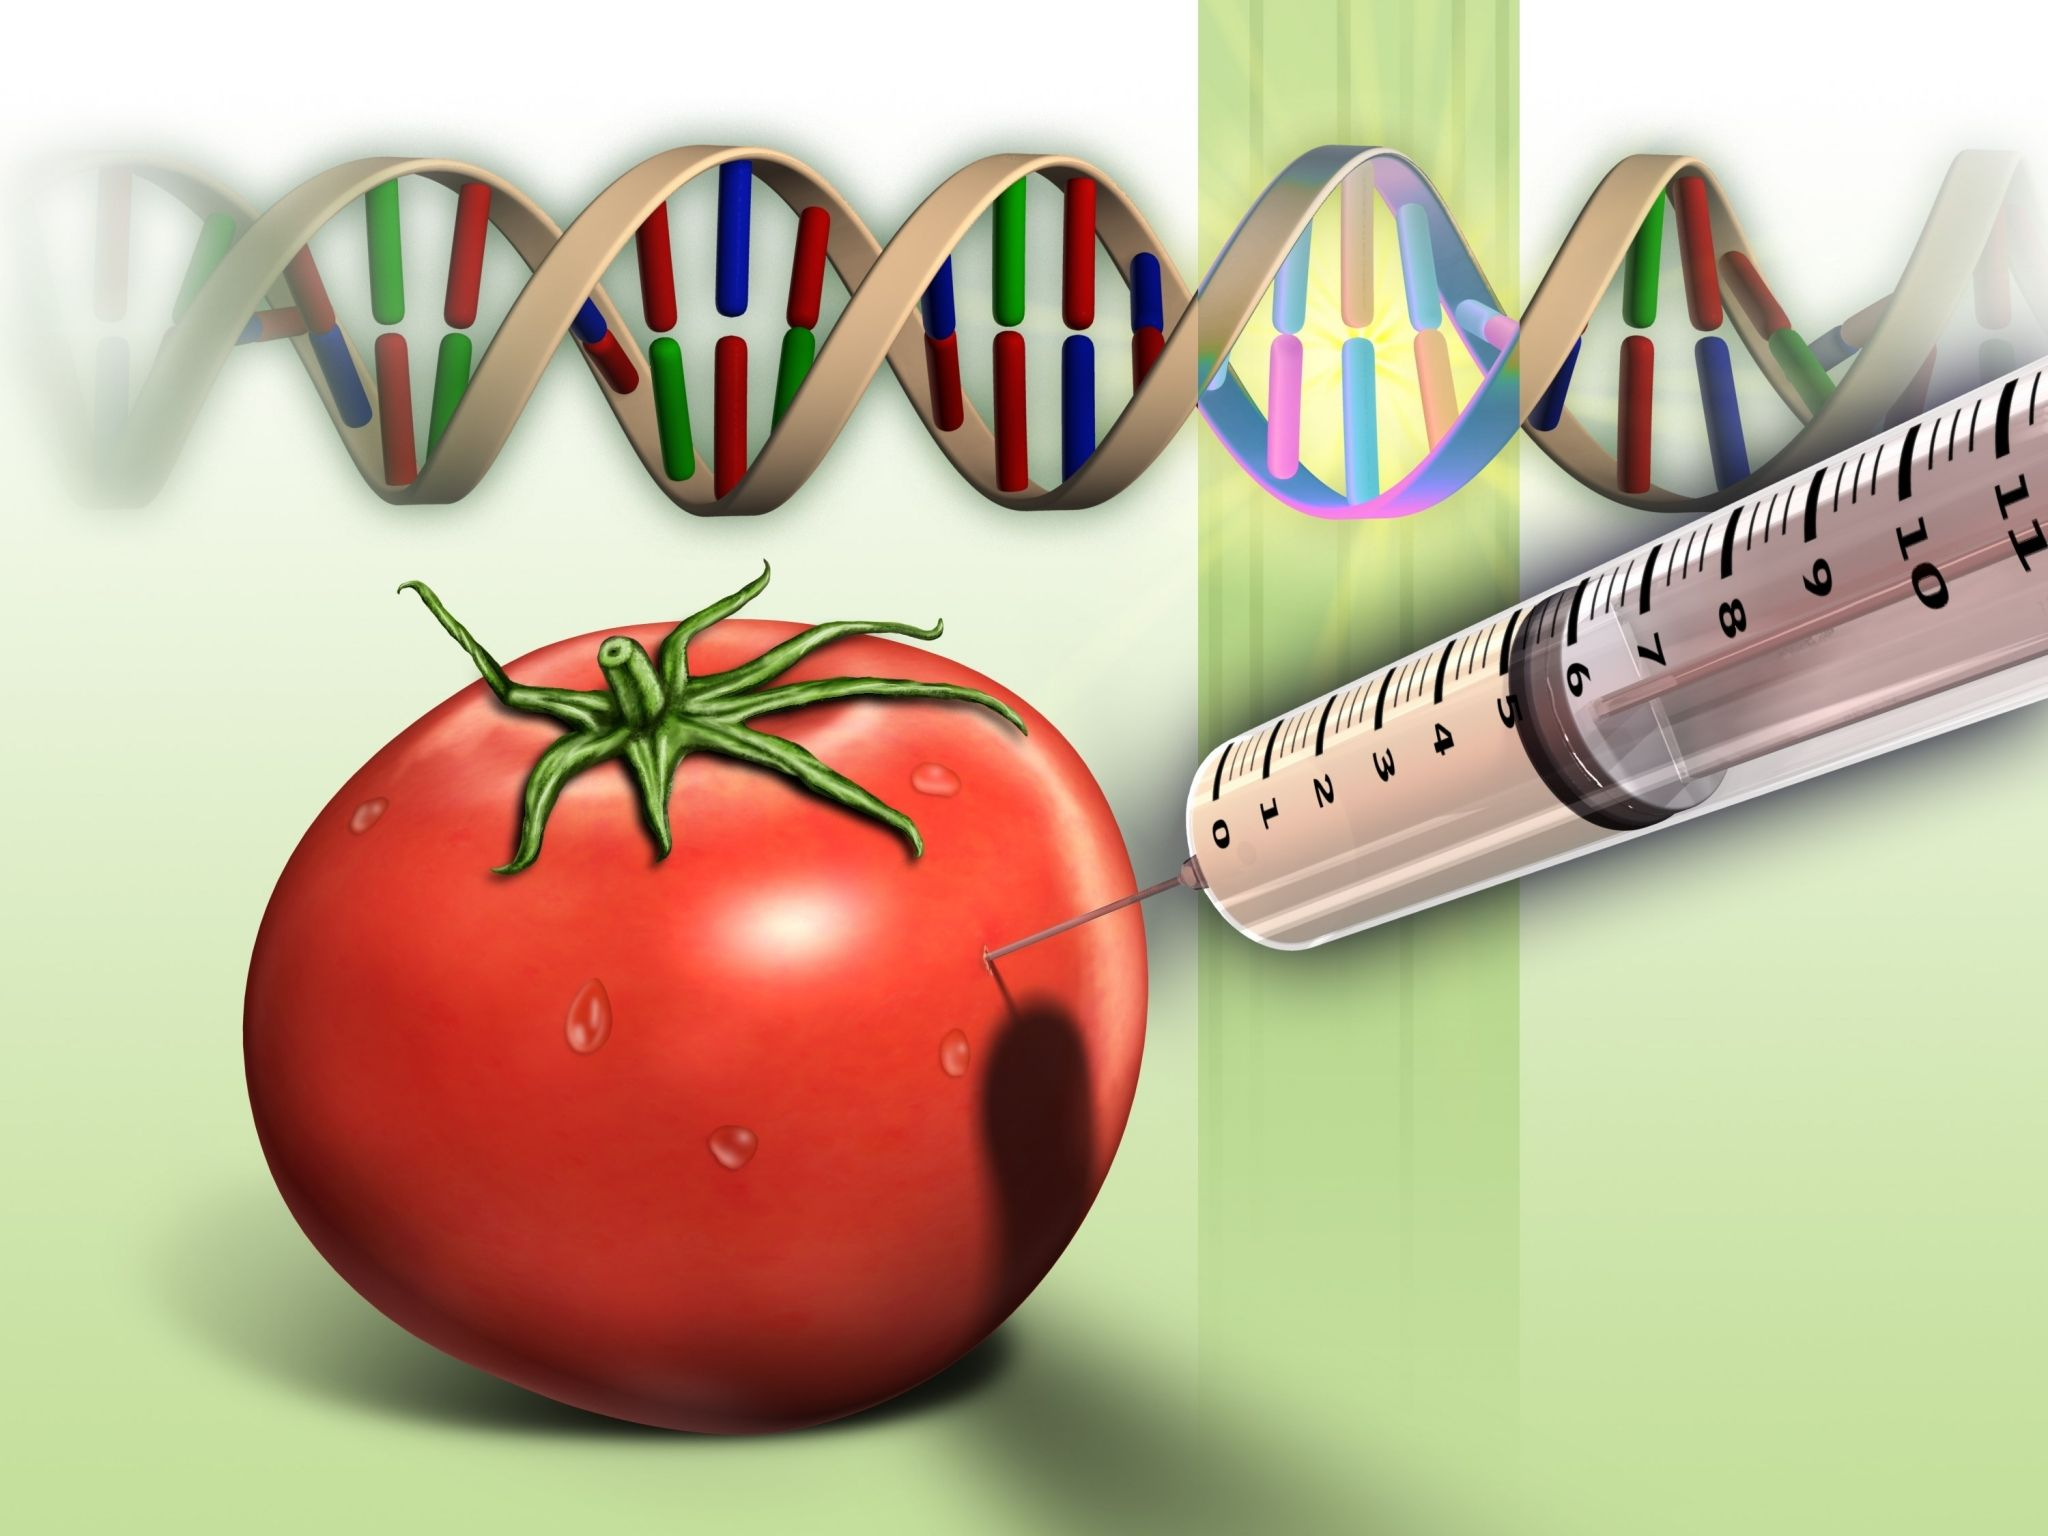 Genetically modified food background